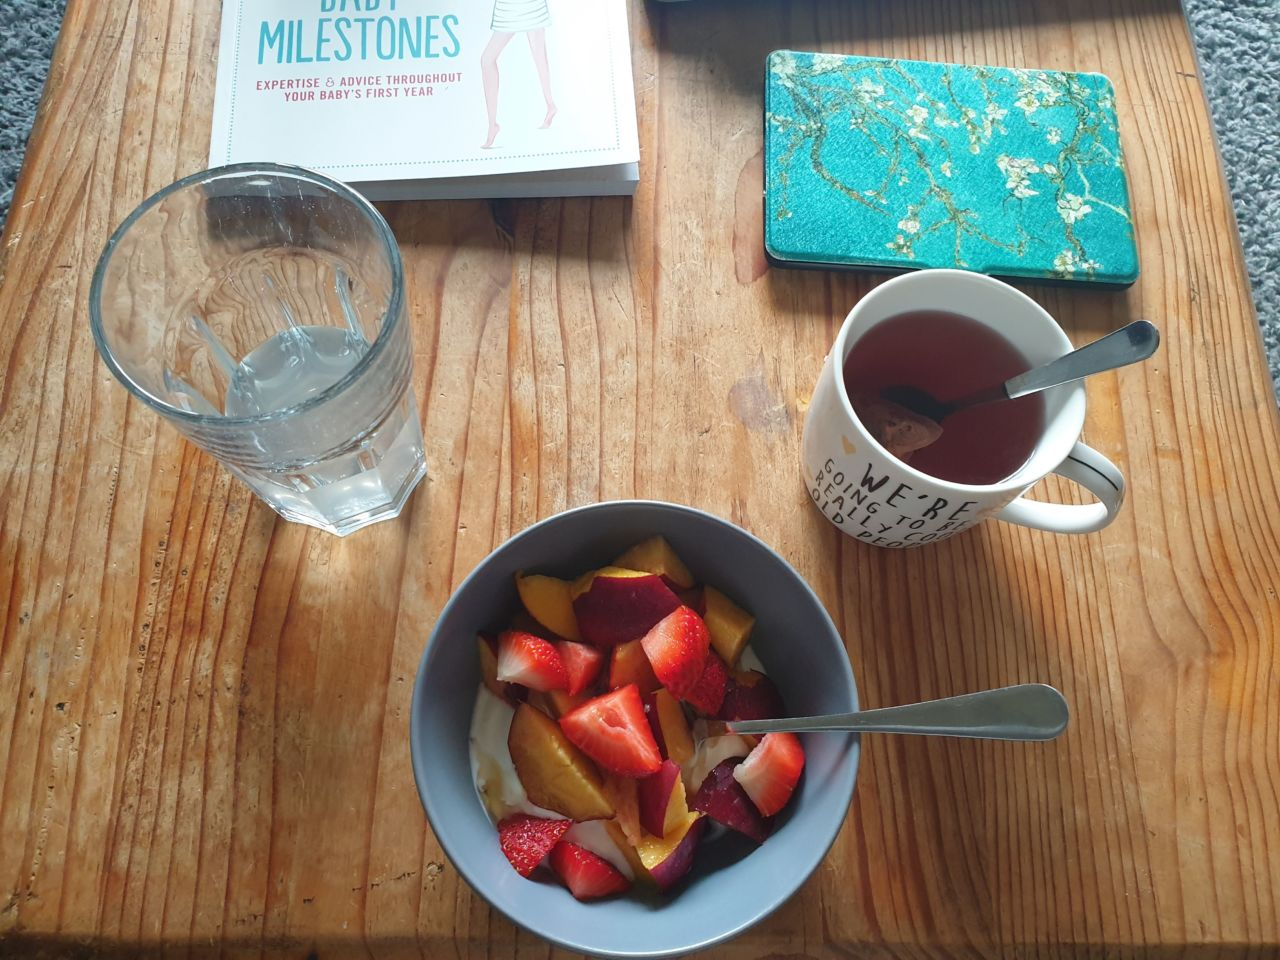 36 weeks pregnancy diary - maternity leave breakfast